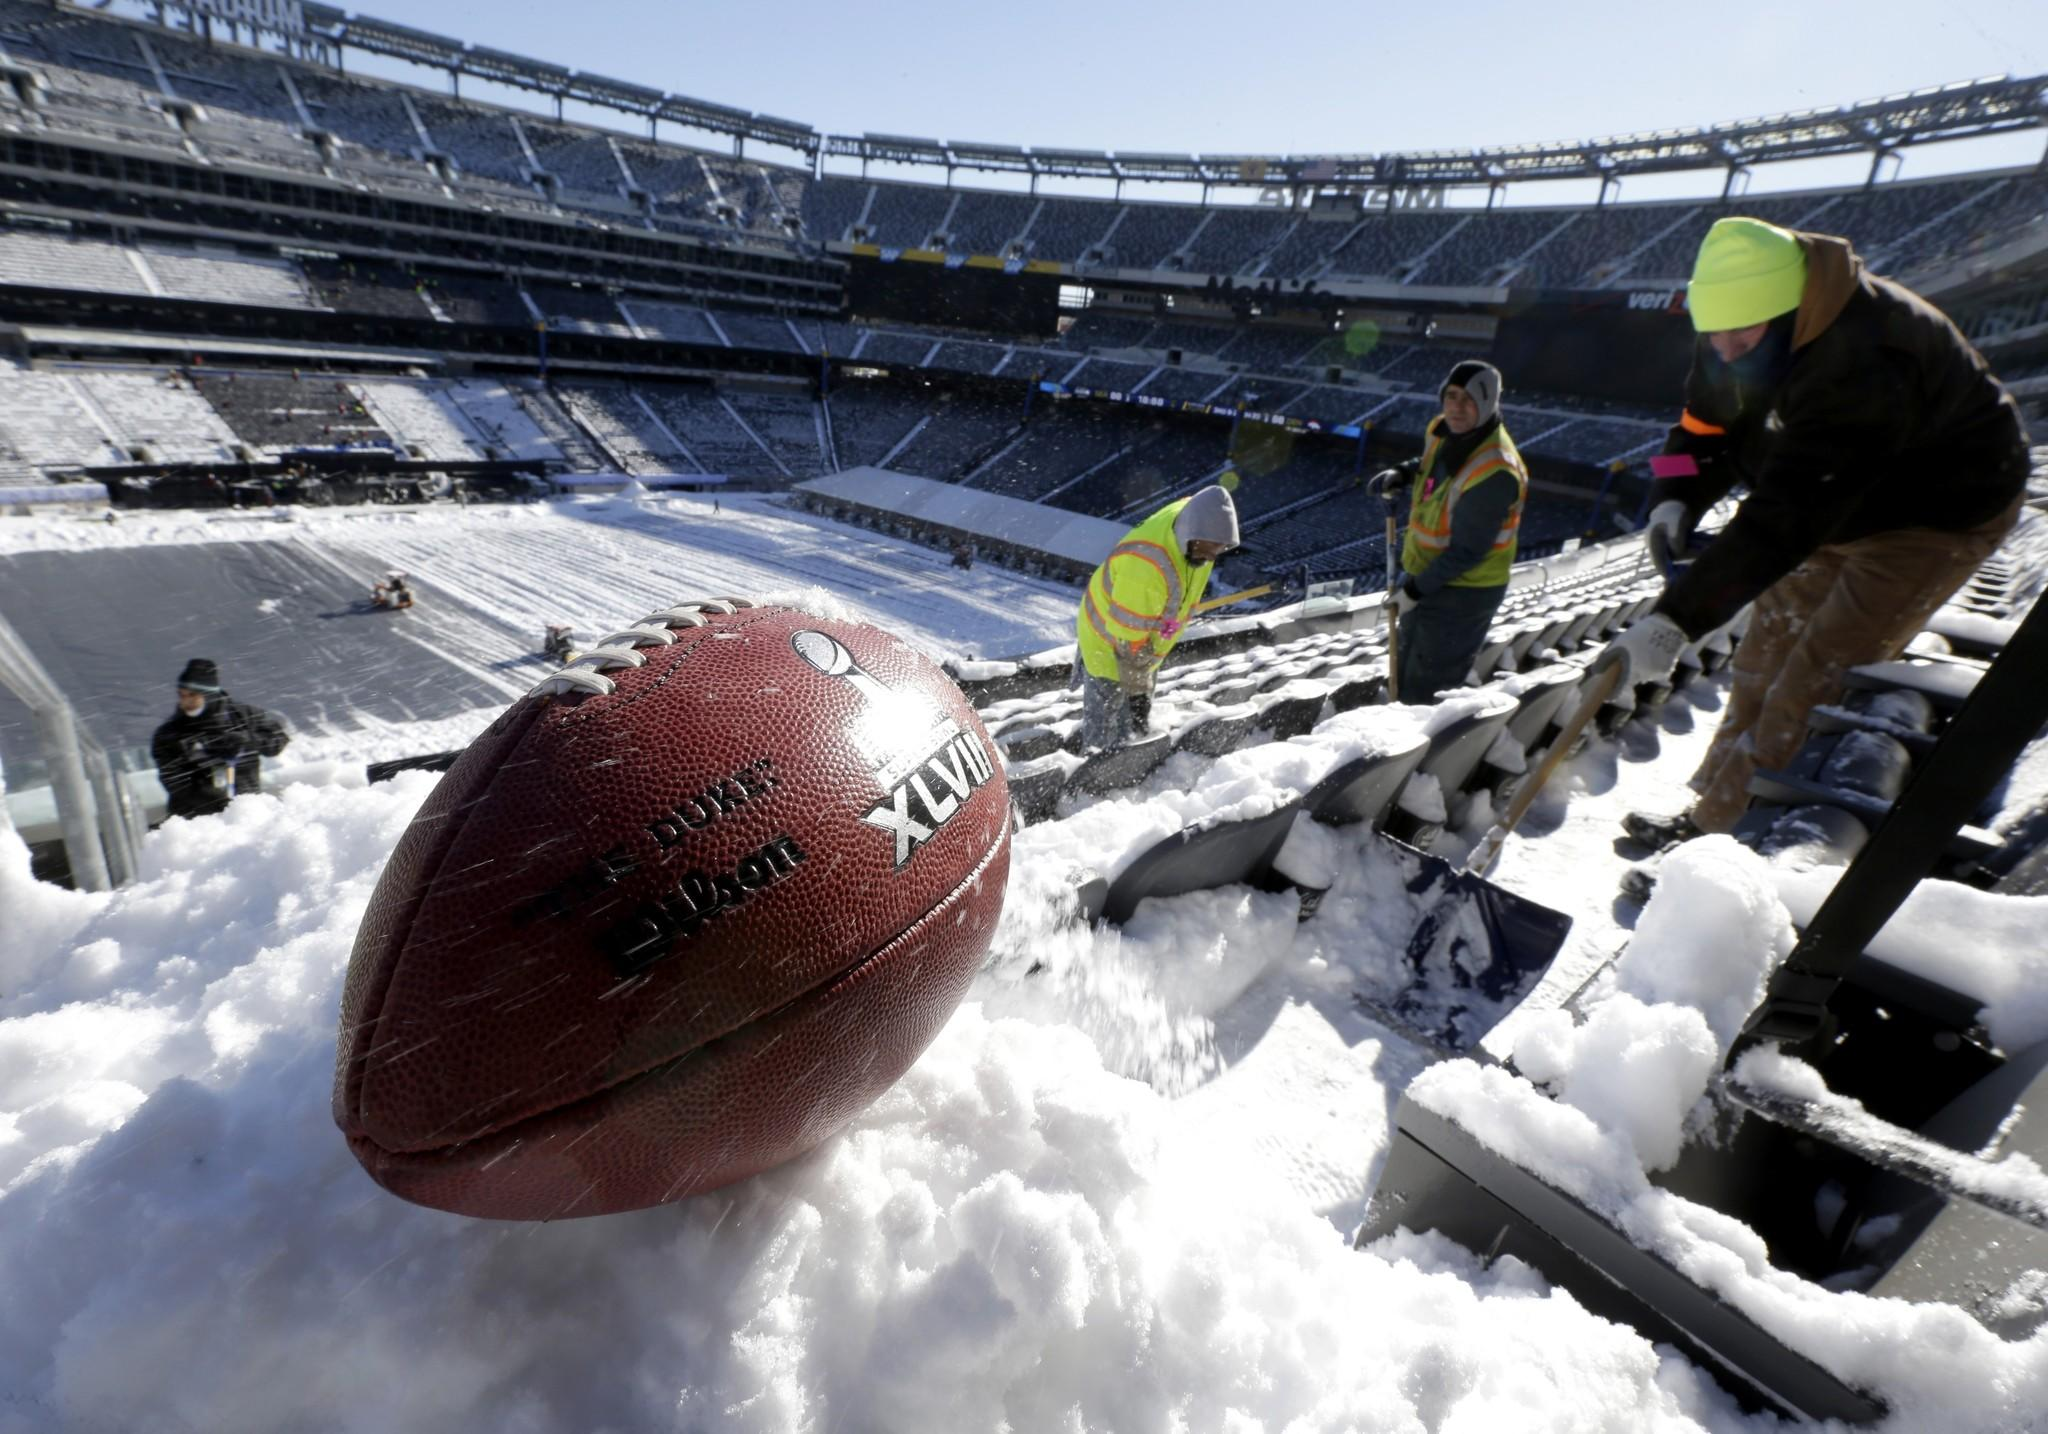 The weather is expected to be cold at Super Bowl XLVIII when the Seahawks and Broncos take the field at MetLife Stadium in East Rutherford, N.J. but if the game comes down to field goals Seattle might have the advantage.